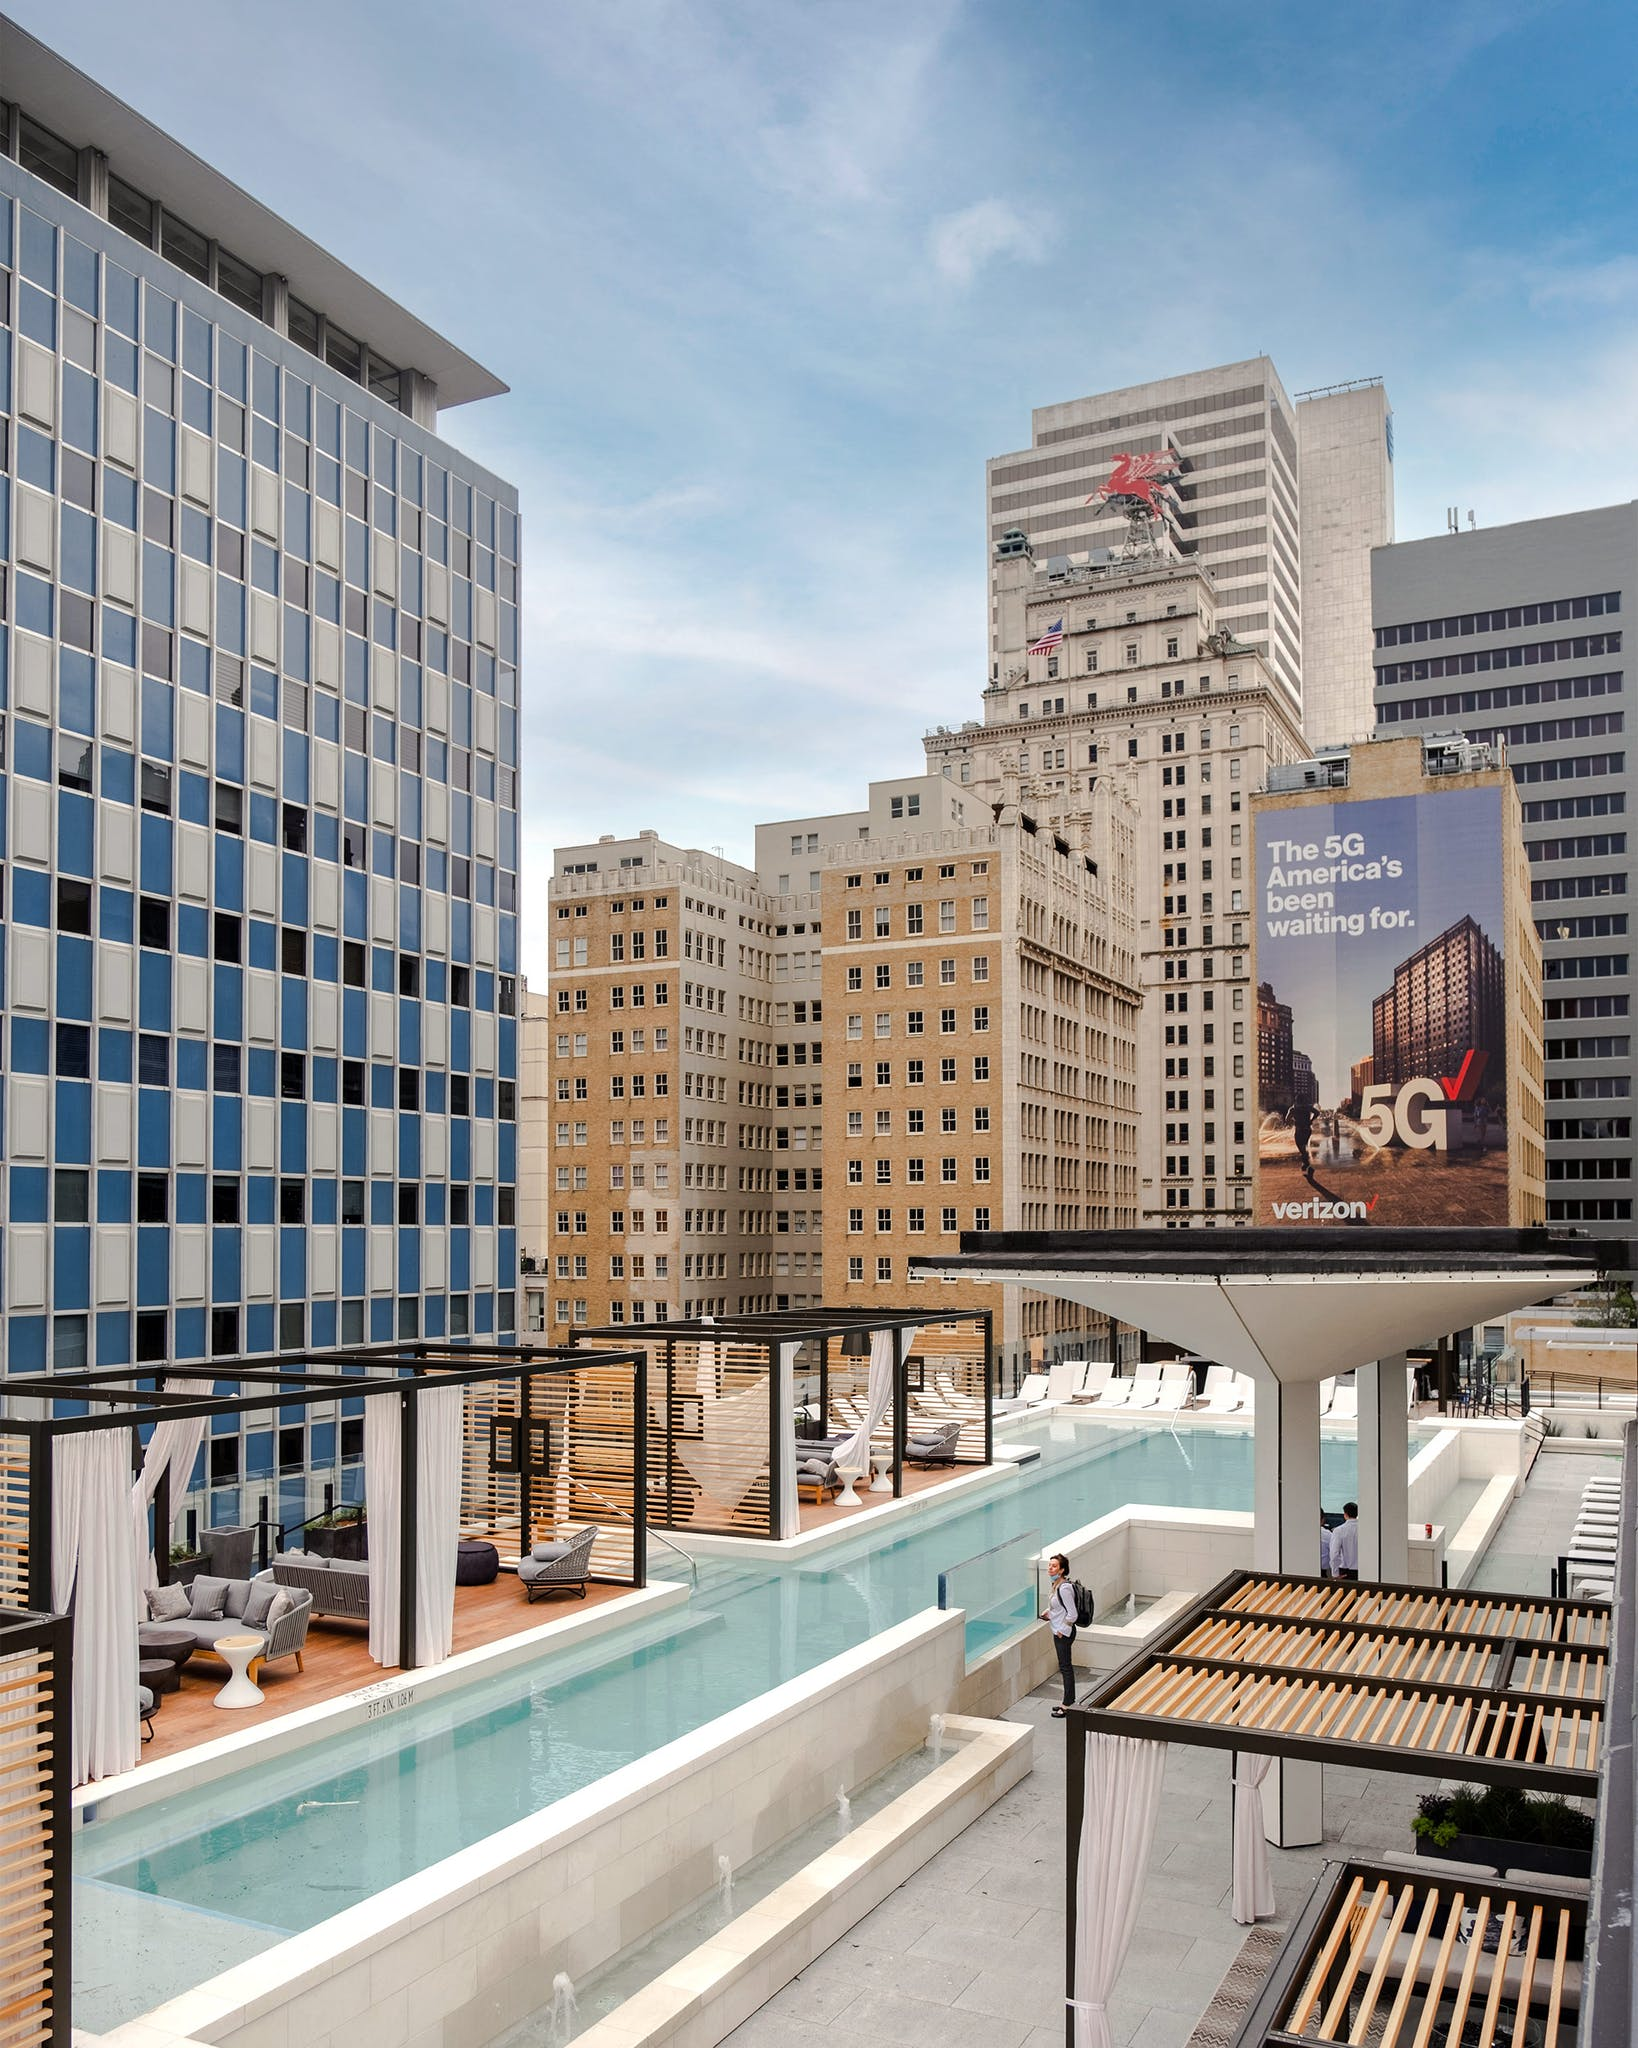 The ninth-floor pool is an urban oasis complete with private Cabo-esque cabanas. The tall, decorative, mushroom-shaped structures on the right are original to the historic building.